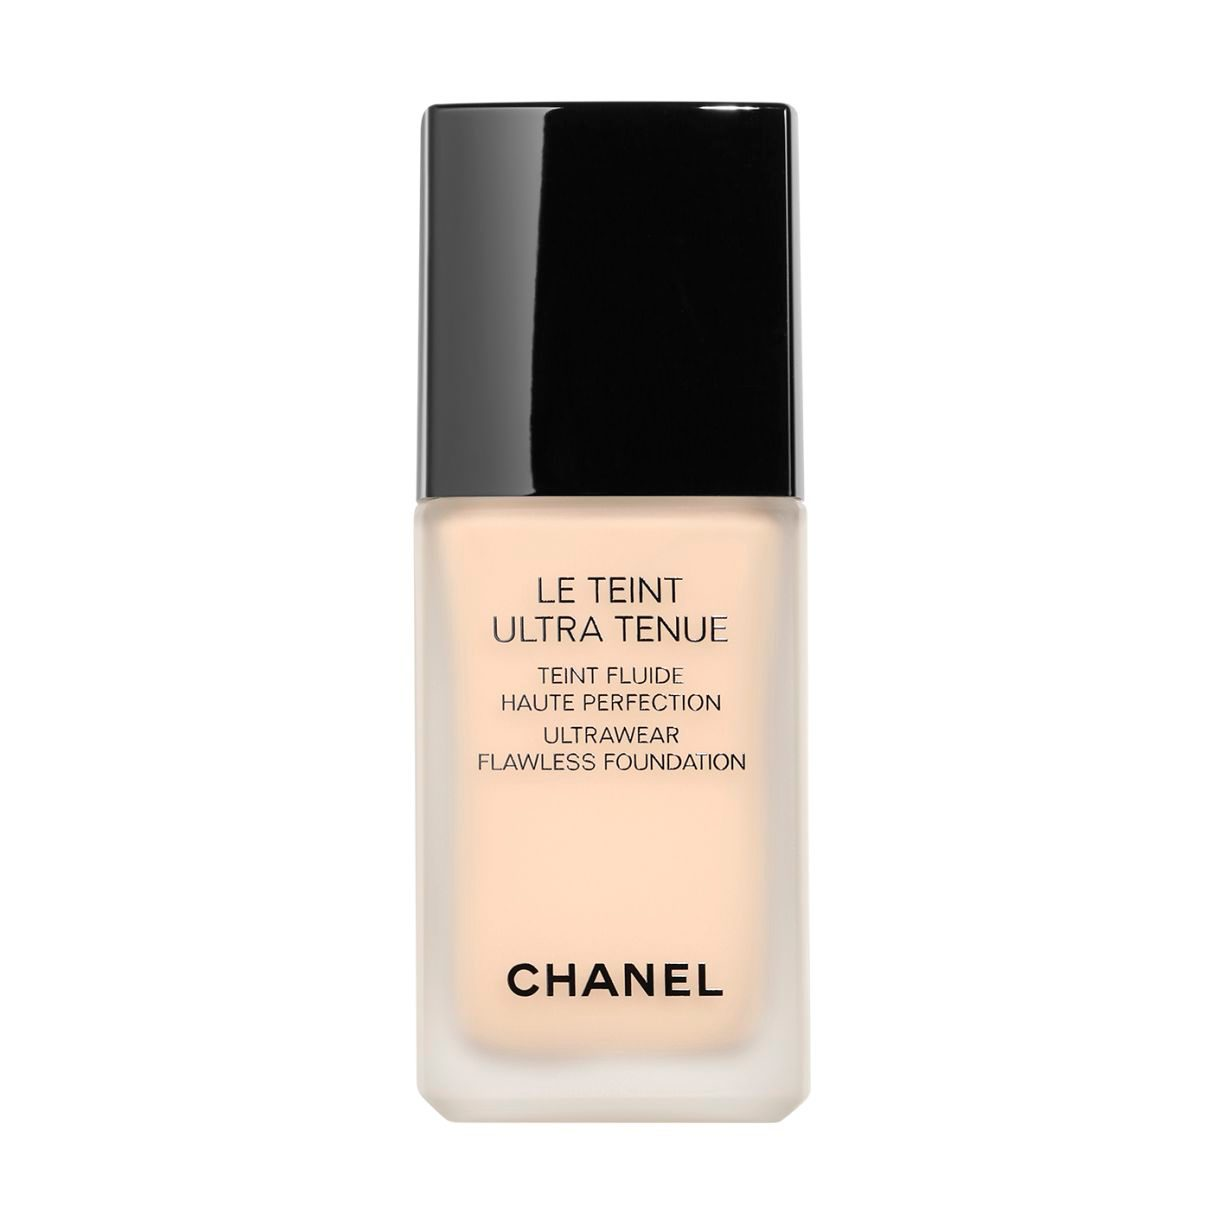 LE TEINT ULTRA TENUE ULTRAWEAR FLAWLESS FOUNDATION 22 BEIGE ROSÉ 30ML